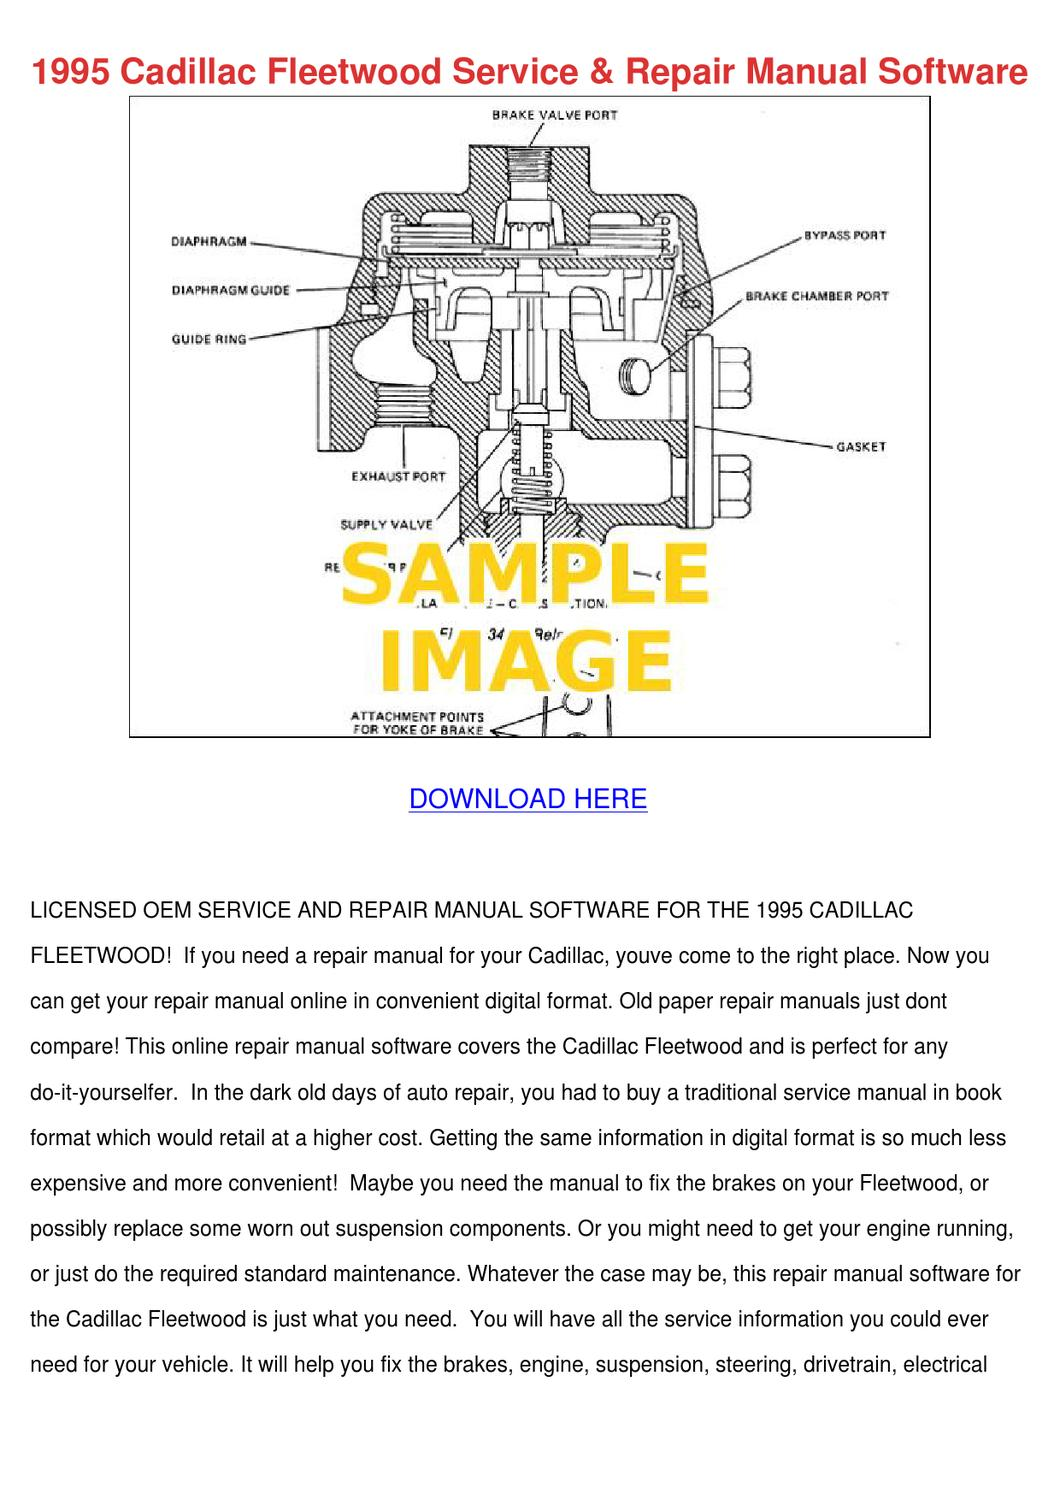 1995 Cadillac Fleetwood Service Repair Manual by AntoinetteWillie - issuu